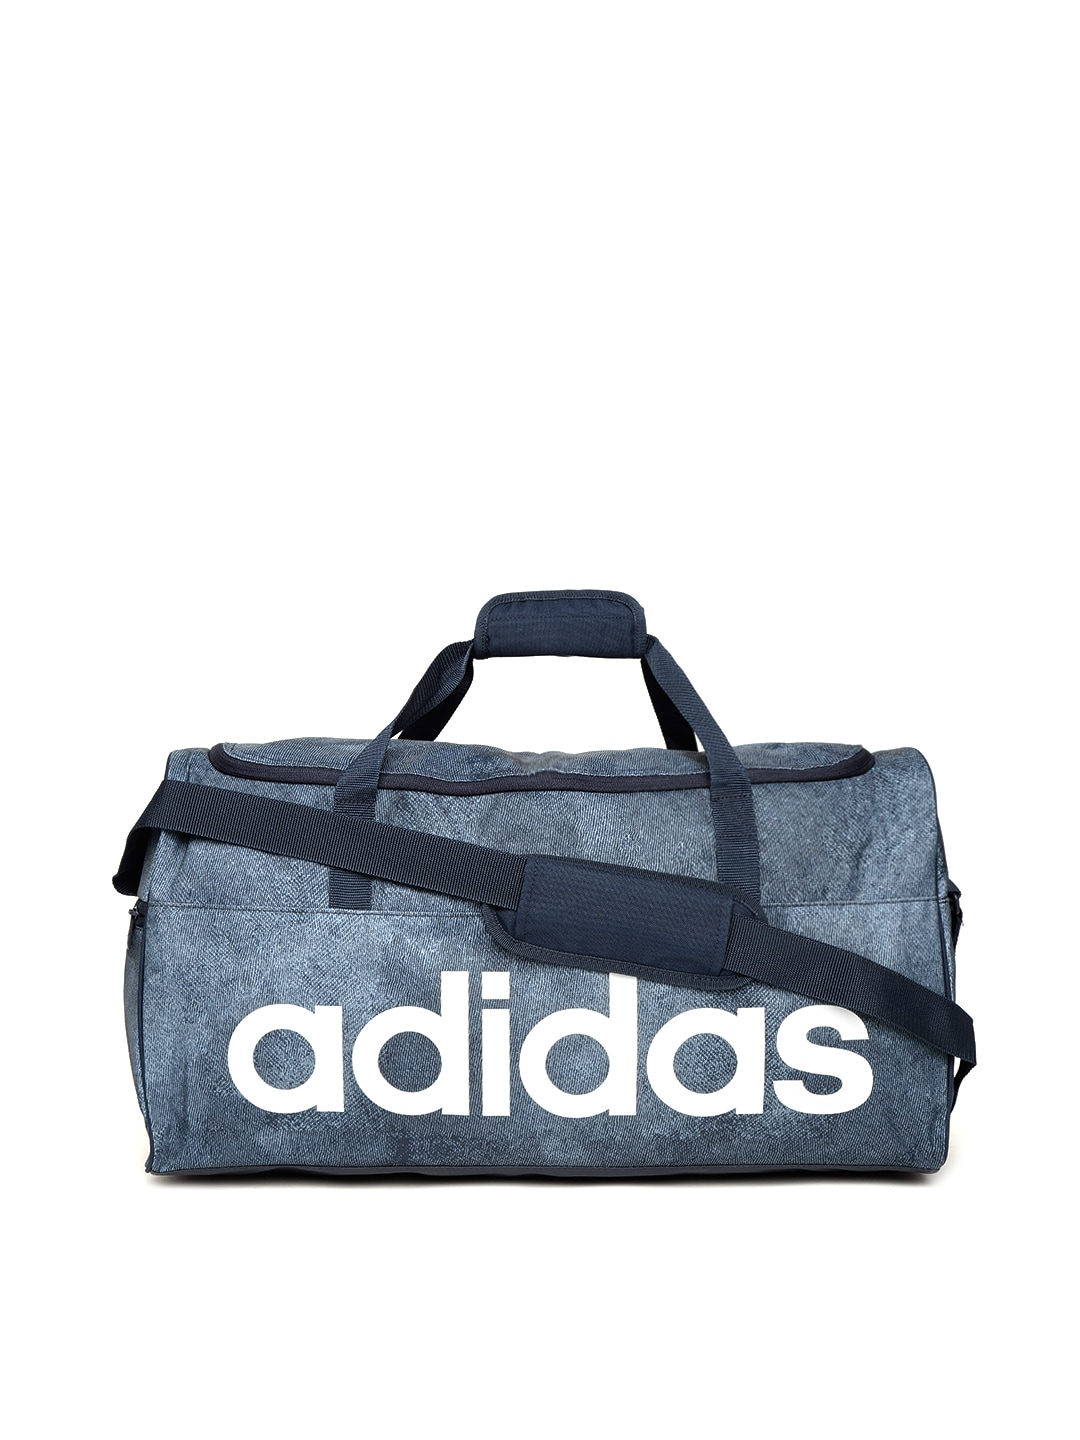 dc9dd45f0b Duffle Bags - Buy Branded Duffle Bags Online in India